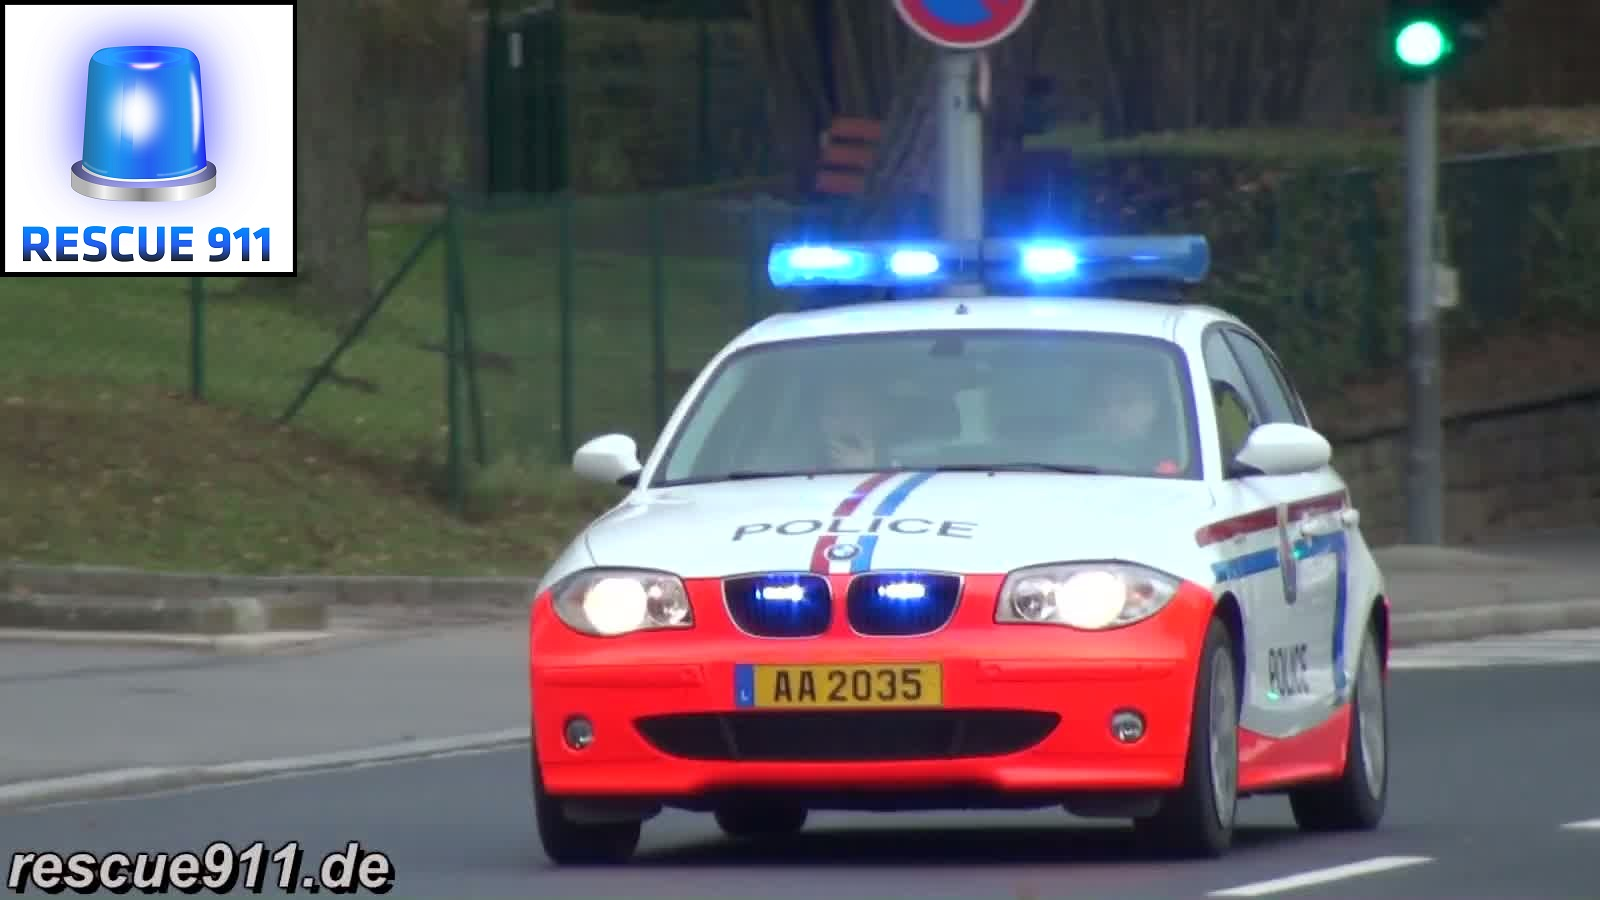 Police + SAMU + Protection Civile + Incendie Ambulances (collection) (stream)